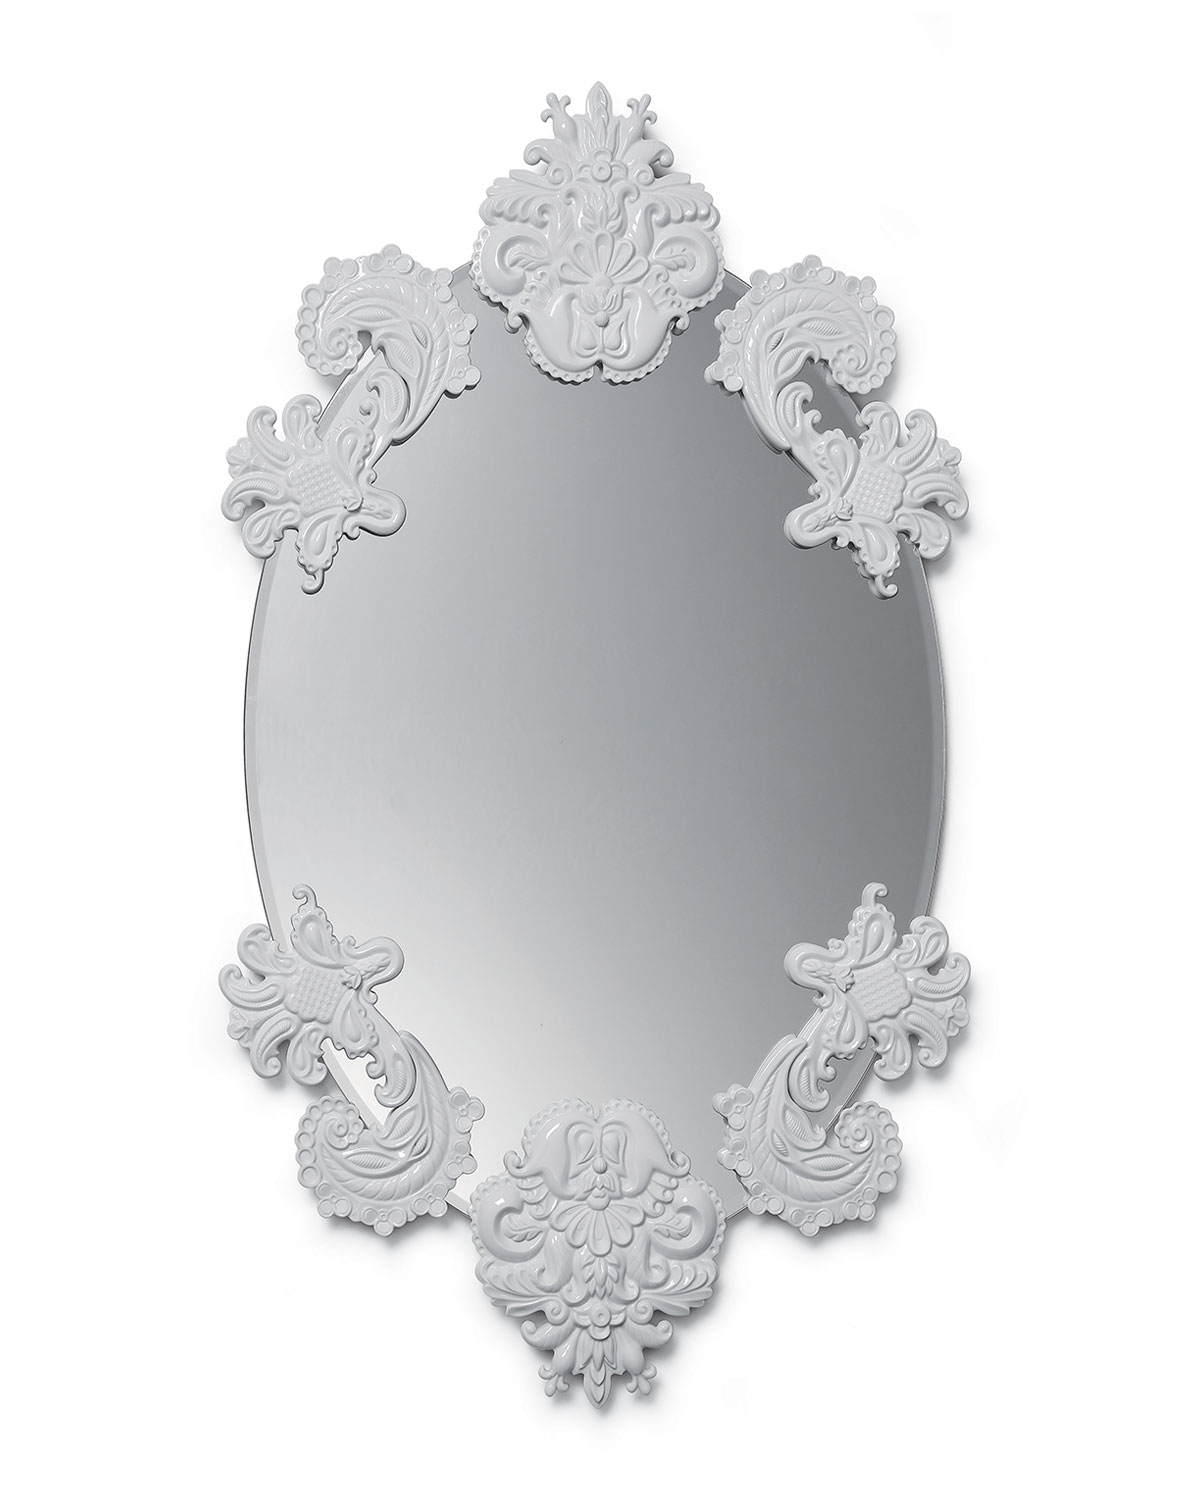 Lladrò OVAL WALL MIRROR